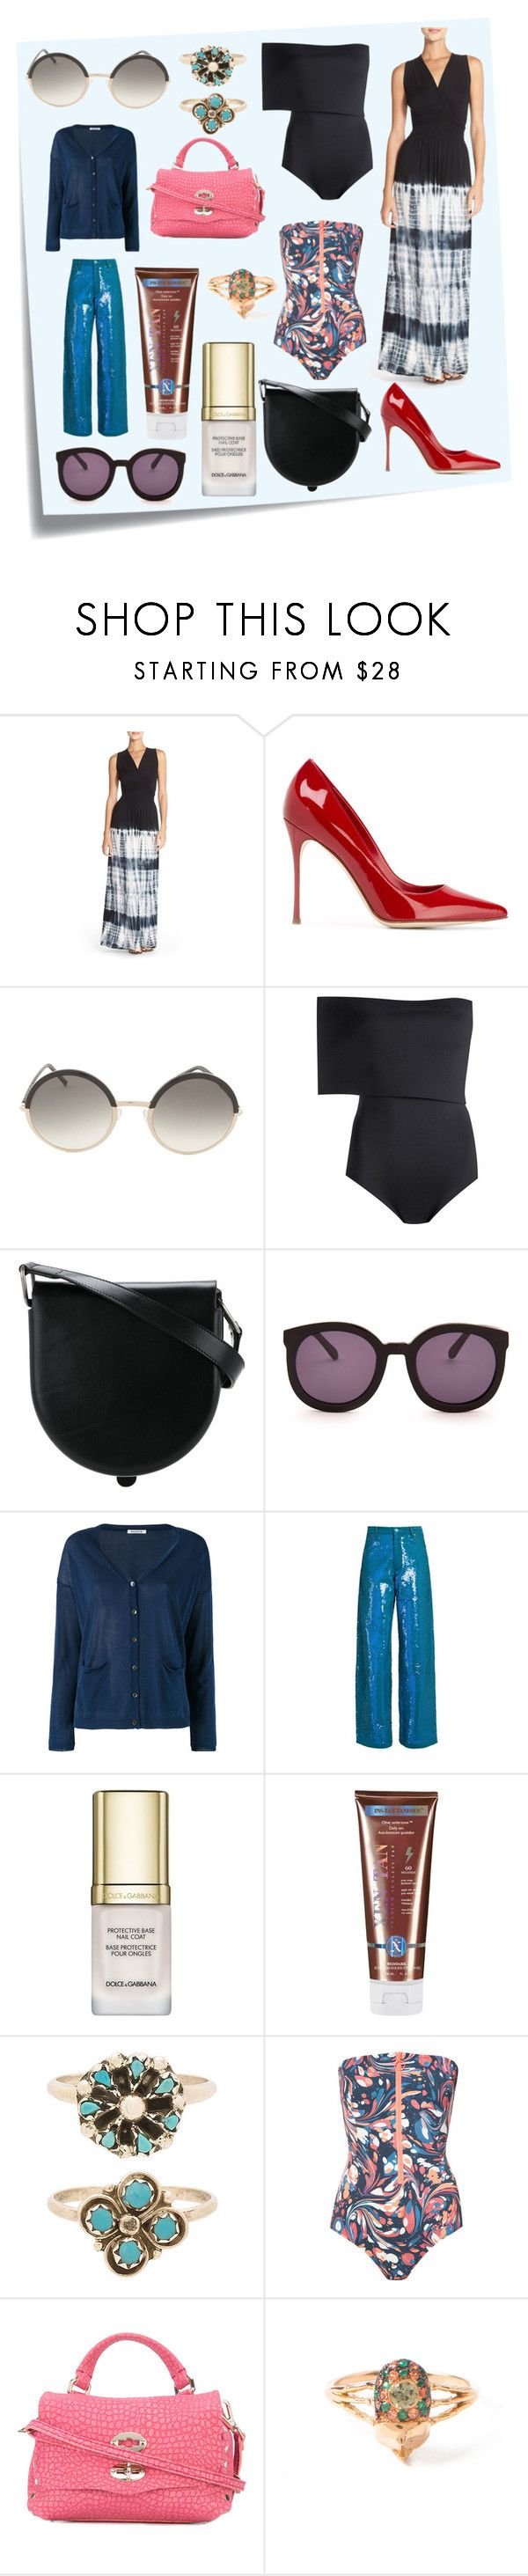 """""""Polyvorian Style"""" by cate-jennifer ❤ liked on Polyvore featuring Post-It, Fraiche By J, Sergio Rossi, Cutler and Gross, Haight, Lemaire, Karen Walker, P.A.R.O.S.H., Ashish and Dolce&Gabbana"""